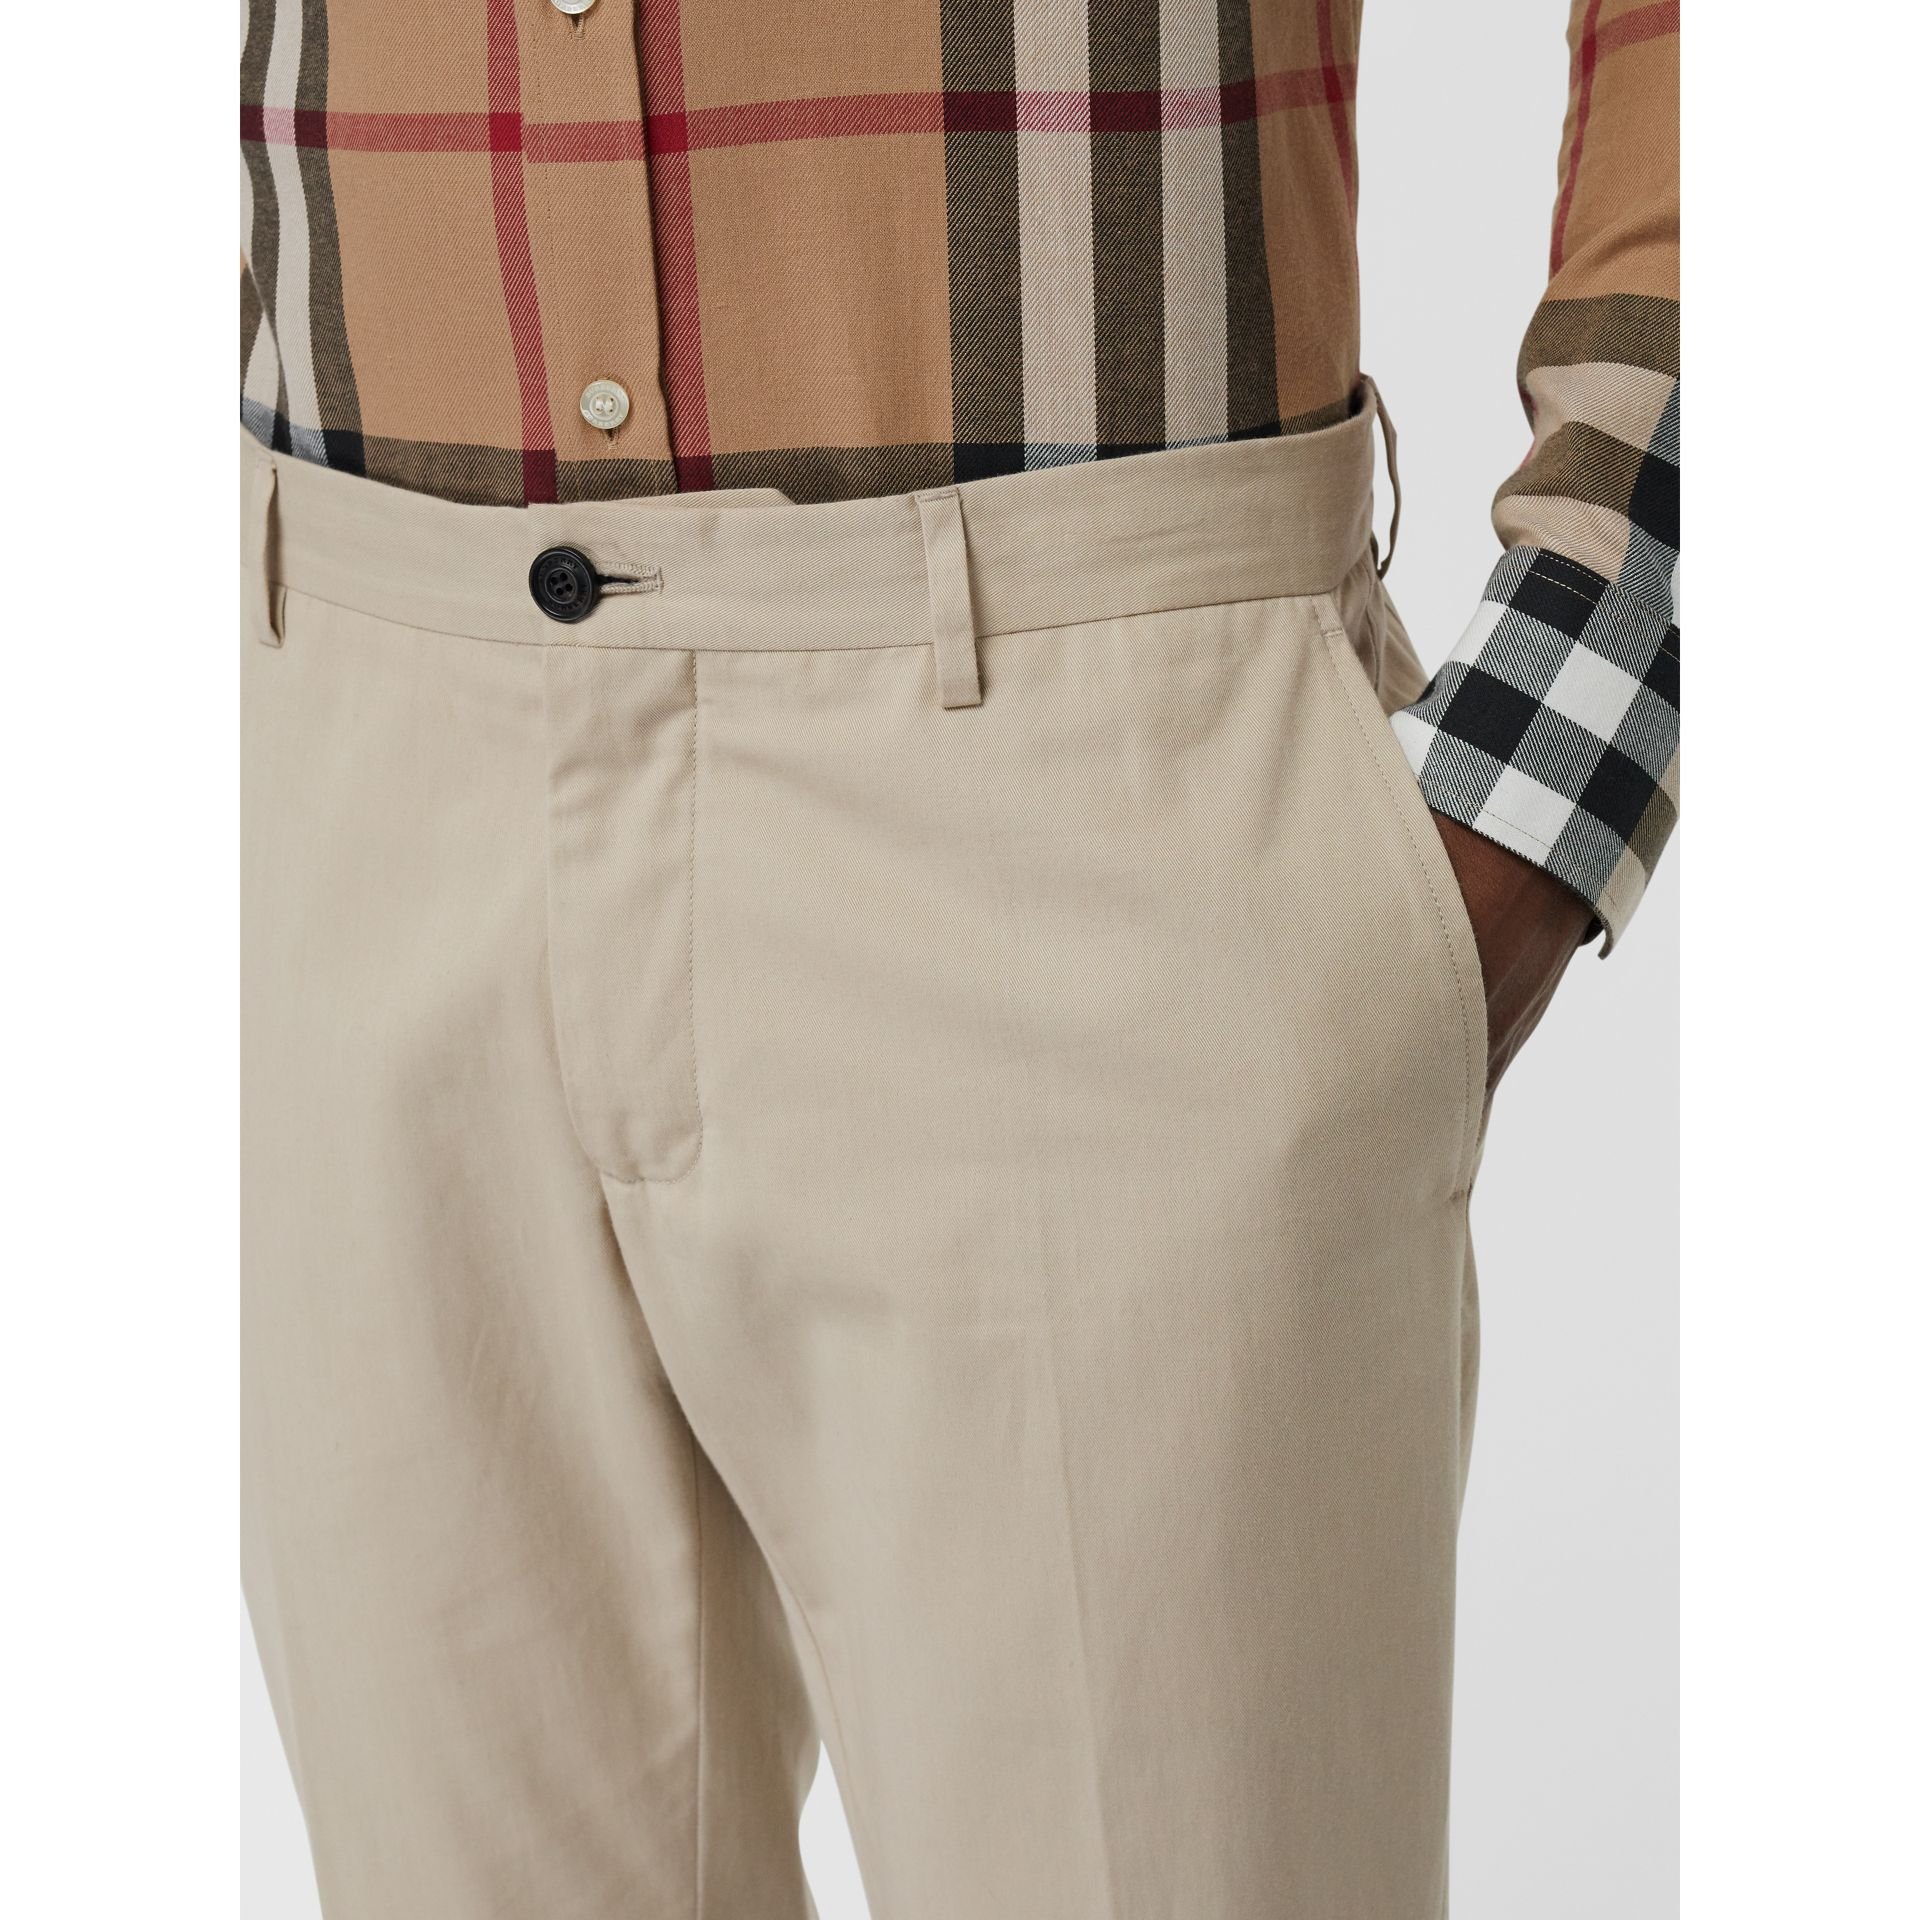 Slim Fit Cotton Blend Twill Chinos in Stone - Men | Burberry - gallery image 1